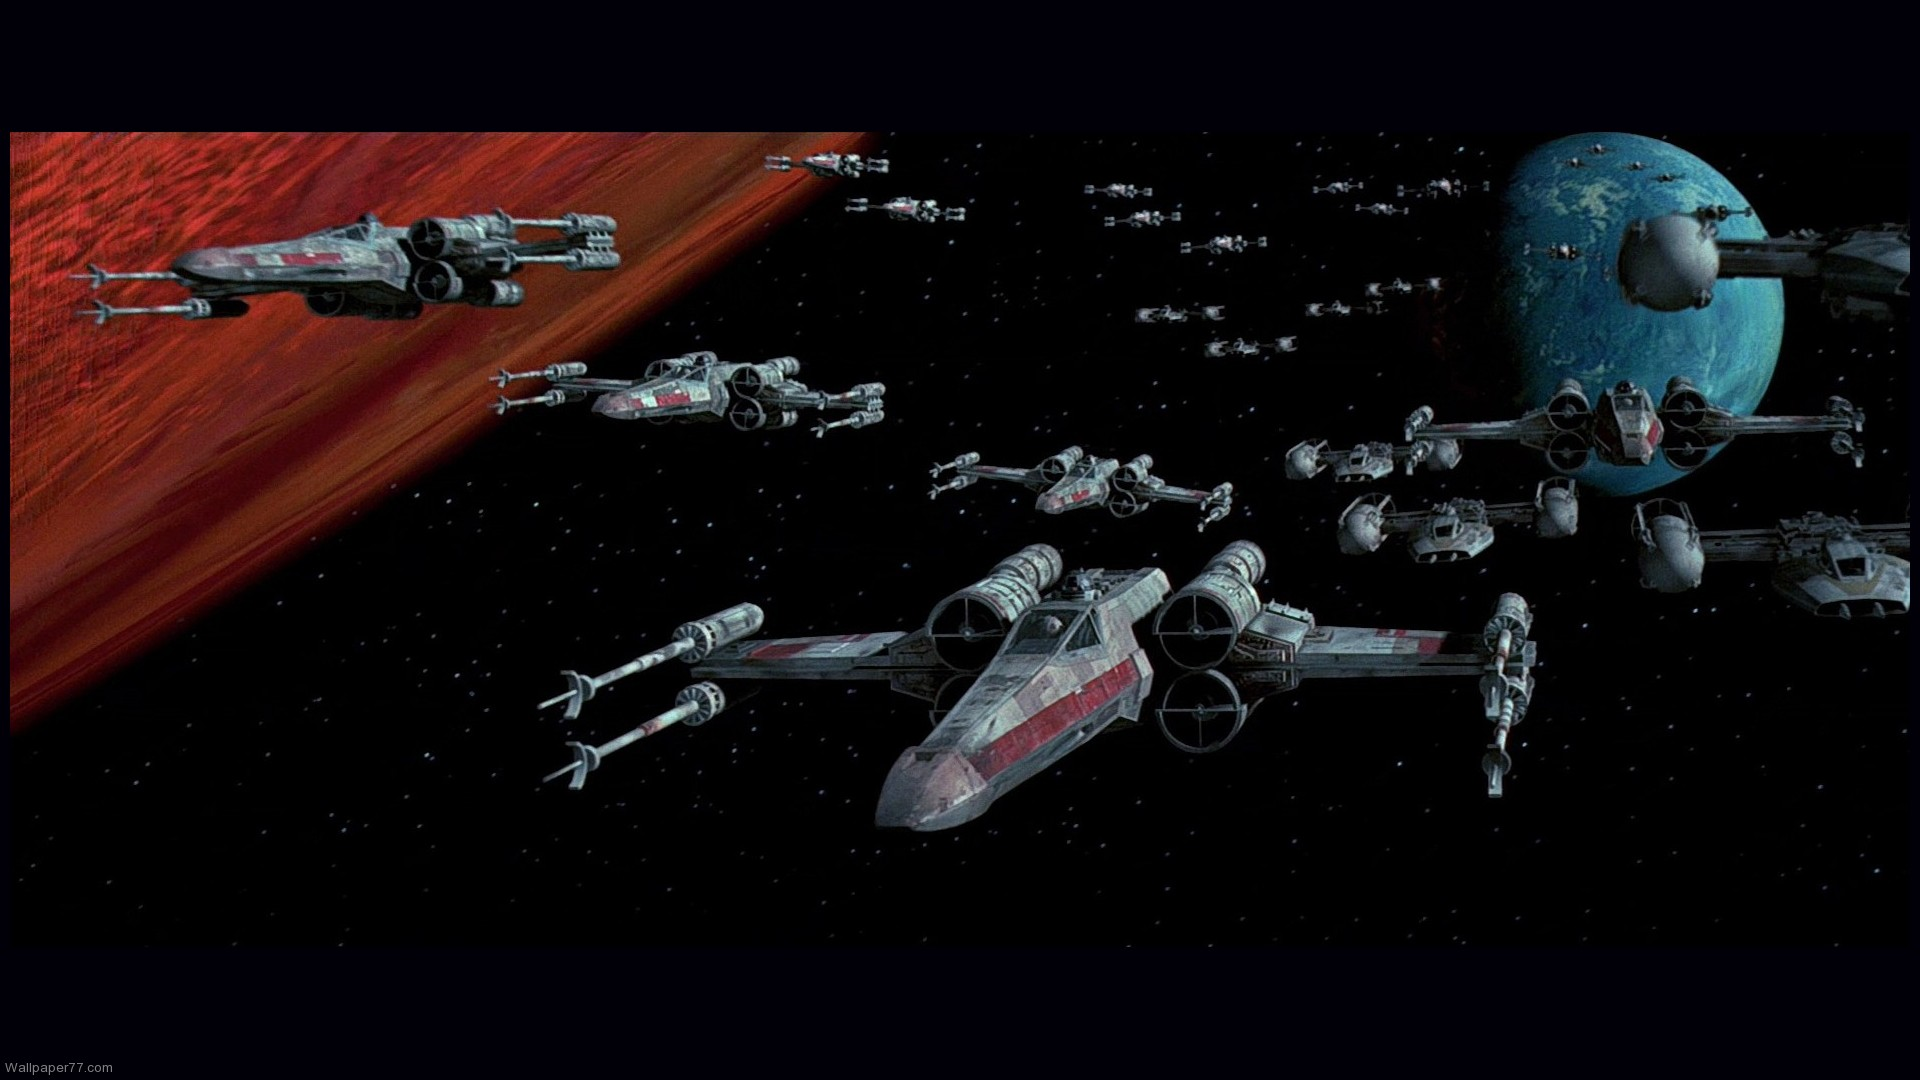 The-Battle-of-Yavin-anime-star-wars-unleashed-1920x1080-1920×1080-wallpaper-wpc5809475